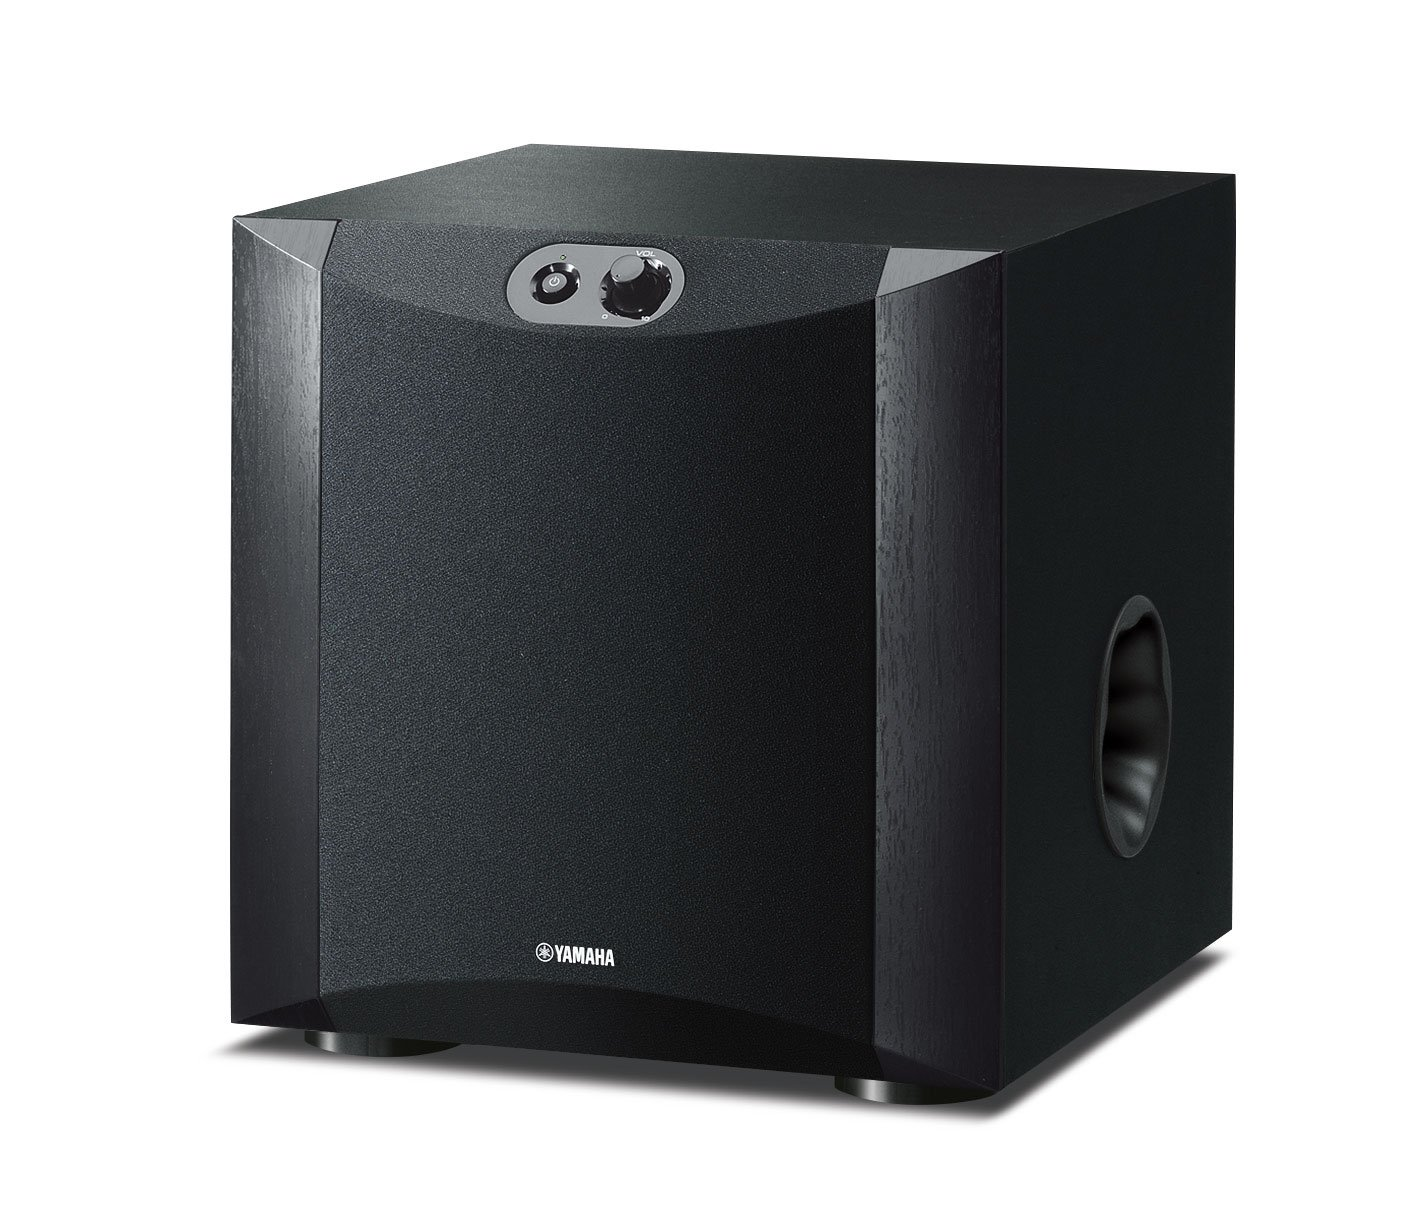 71bcBKhixQL - Yamaha NSSW200 Powered Subwoofer - Black